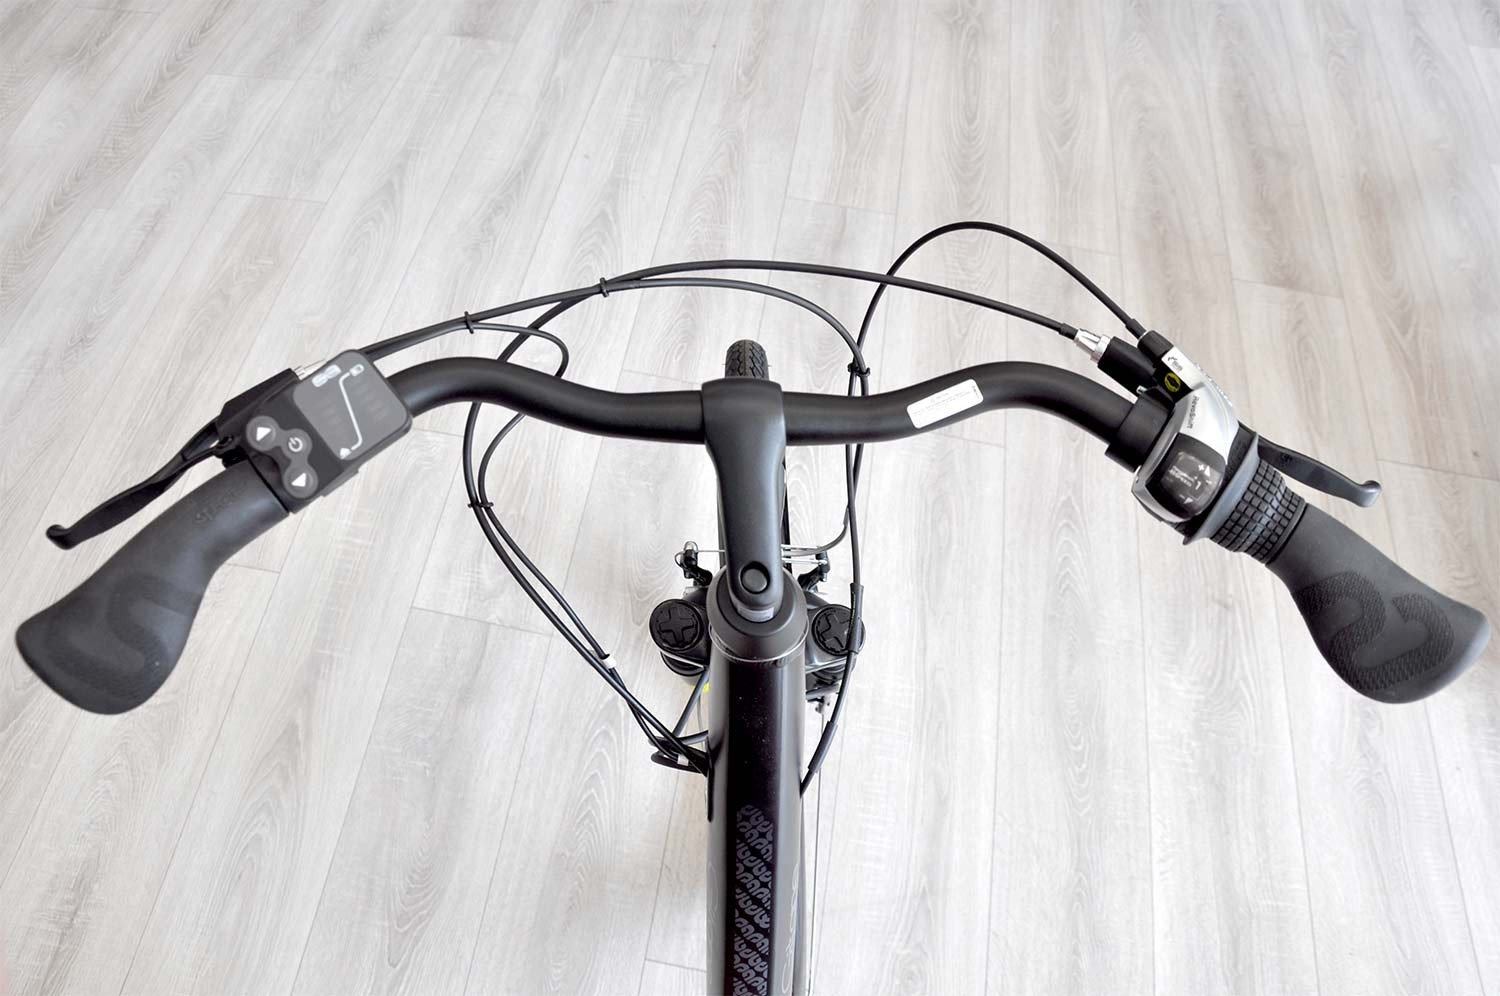 https://w8w5m3f8.stackpathcdn.com/14603/organ-e-bike-9ah-ou-11ah-blanc.jpg